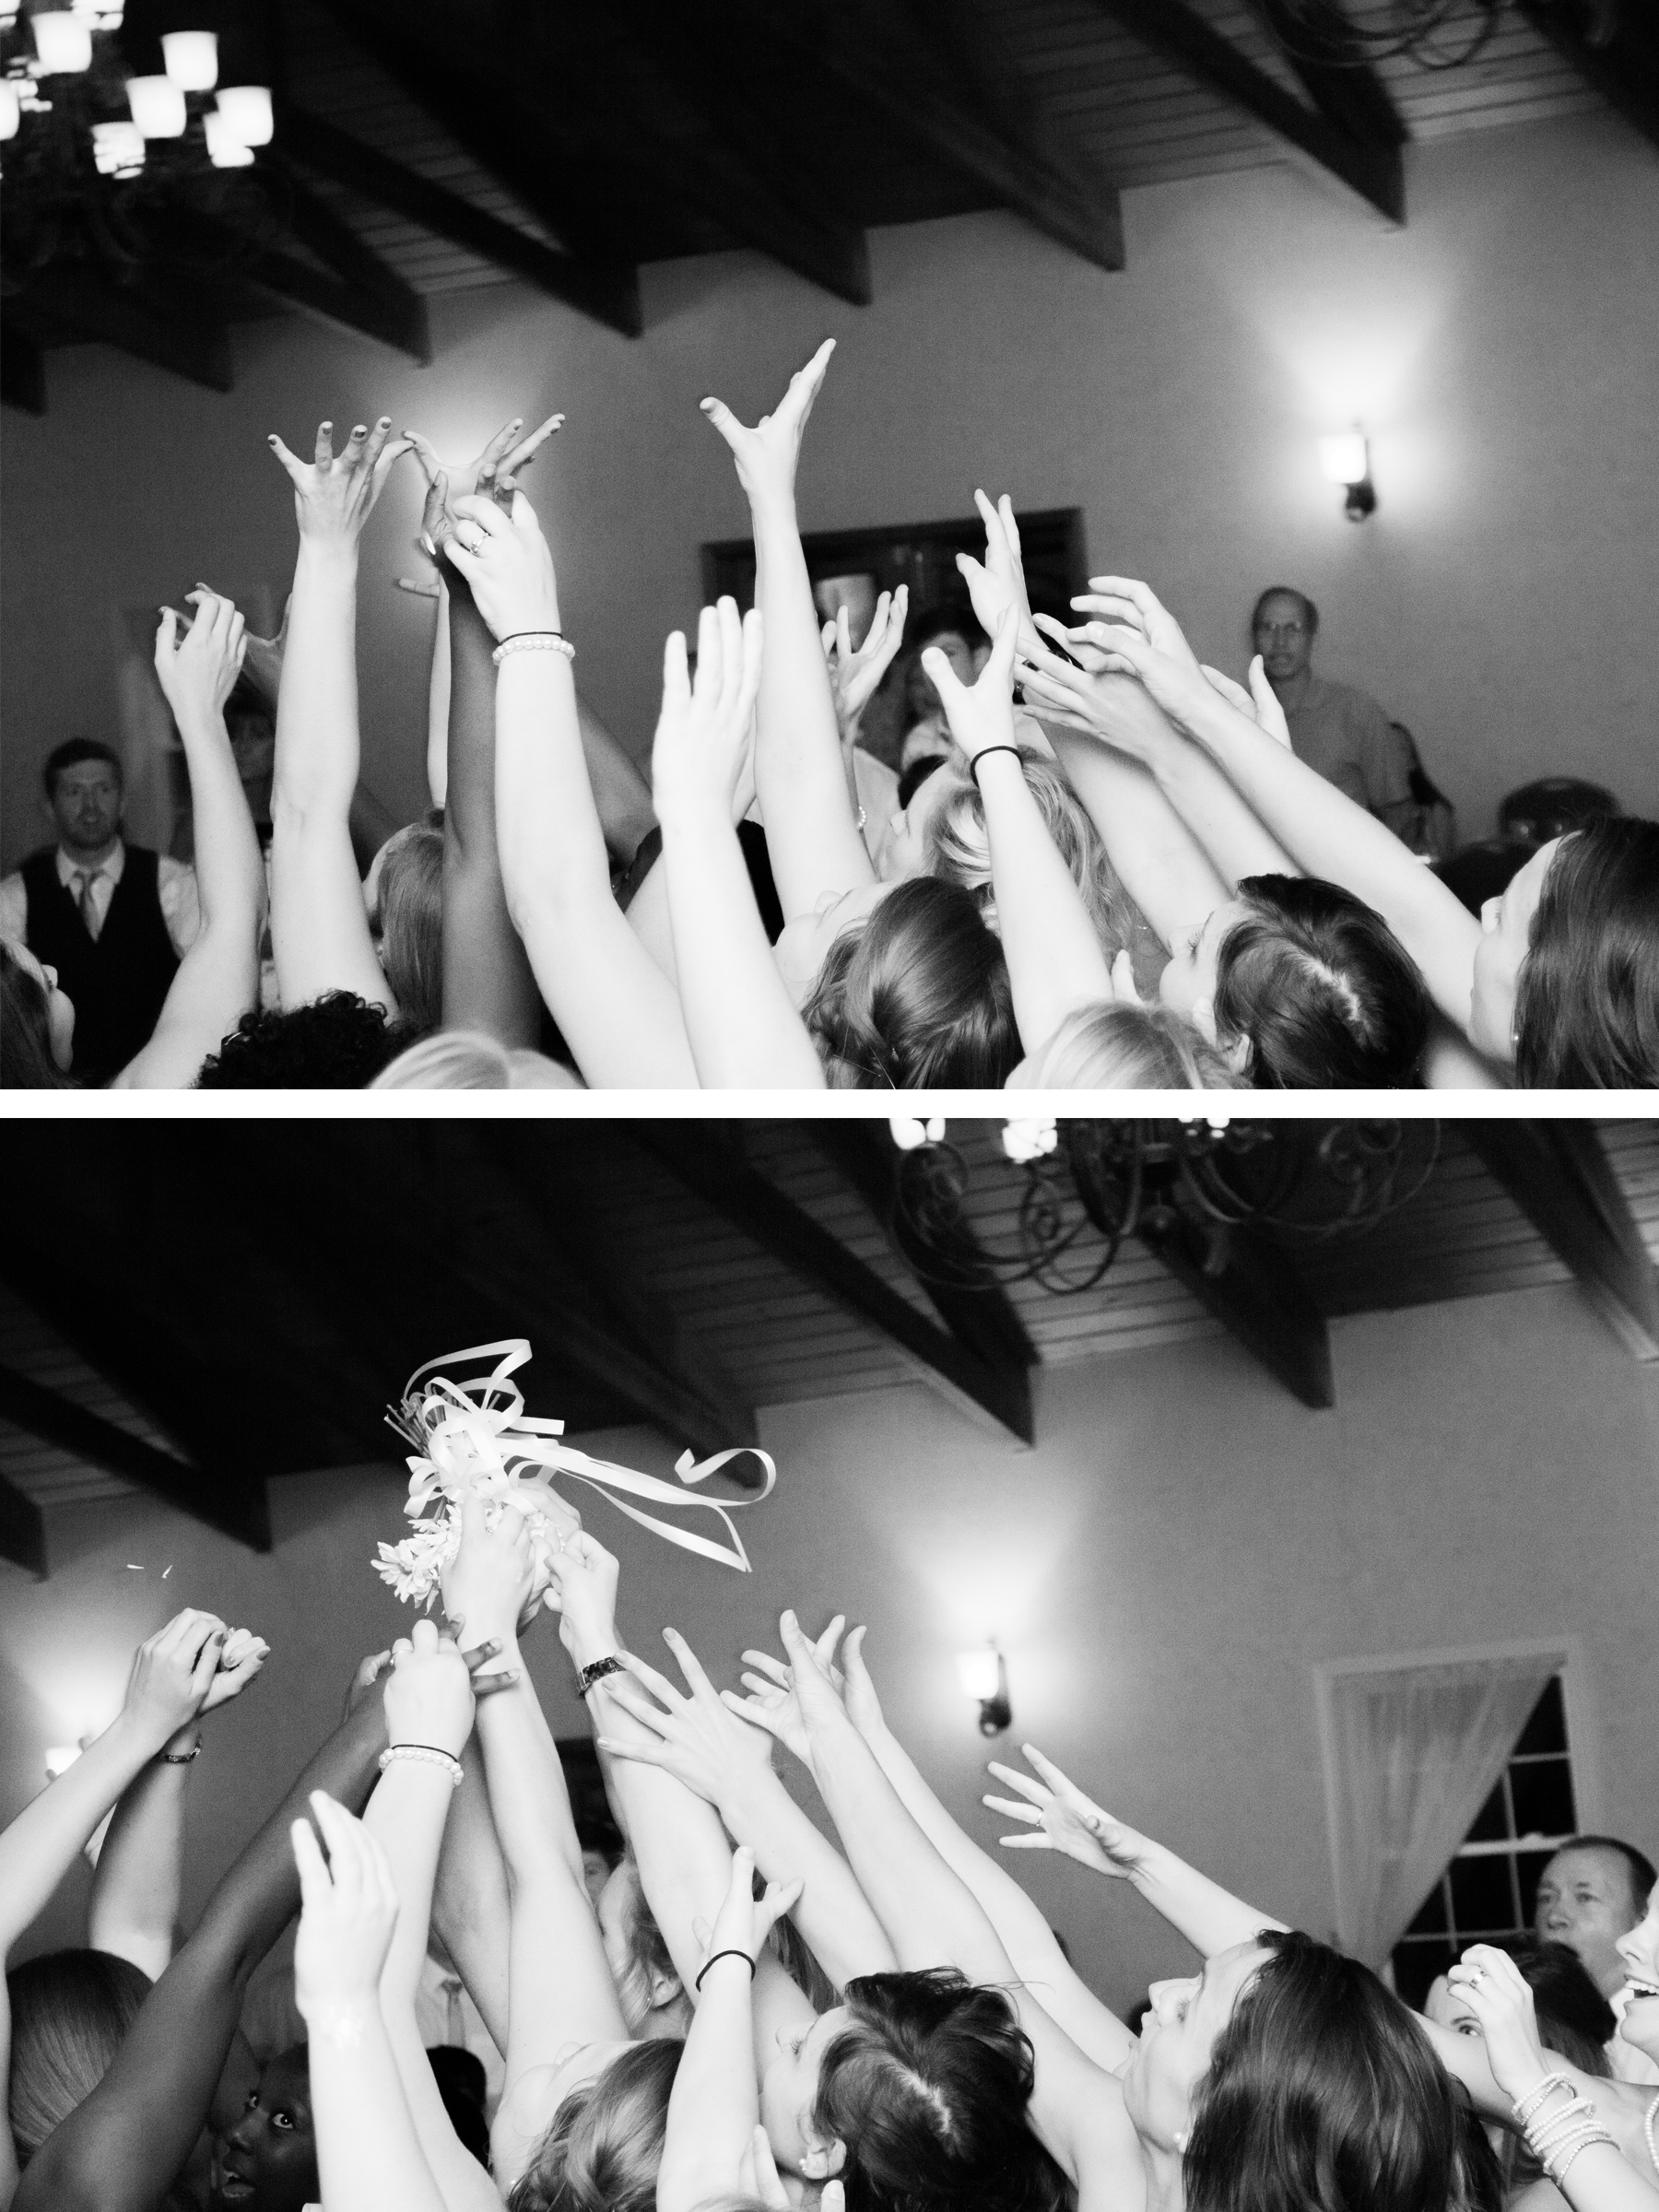 Then there was the bouquet toss.